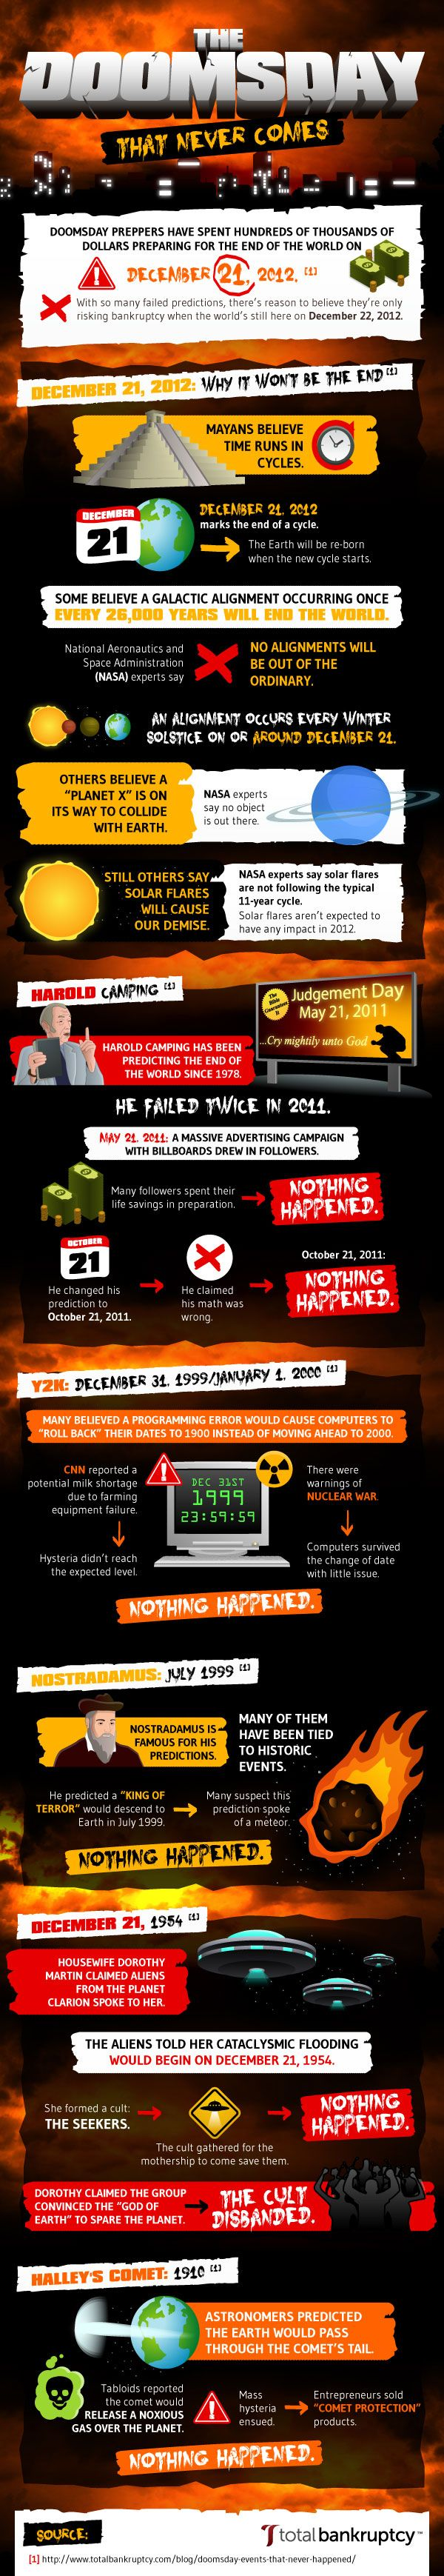 Doomsday preppers have spent hundreds of thousands of dollars preparing for the end of the world on December 21, 2012